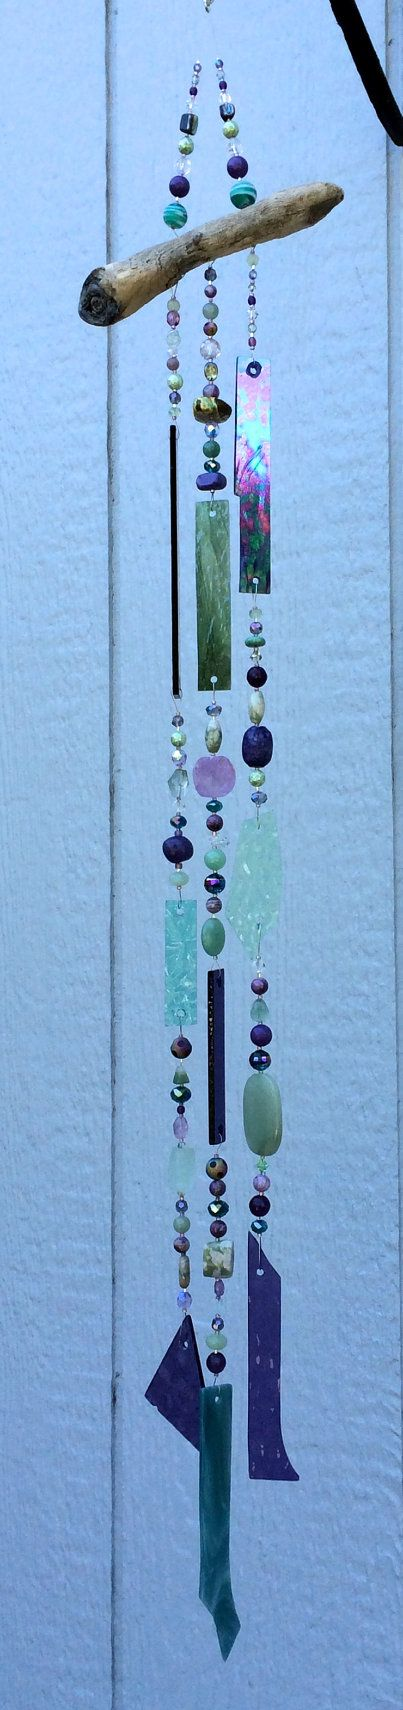 stained glass wind chimes instructions